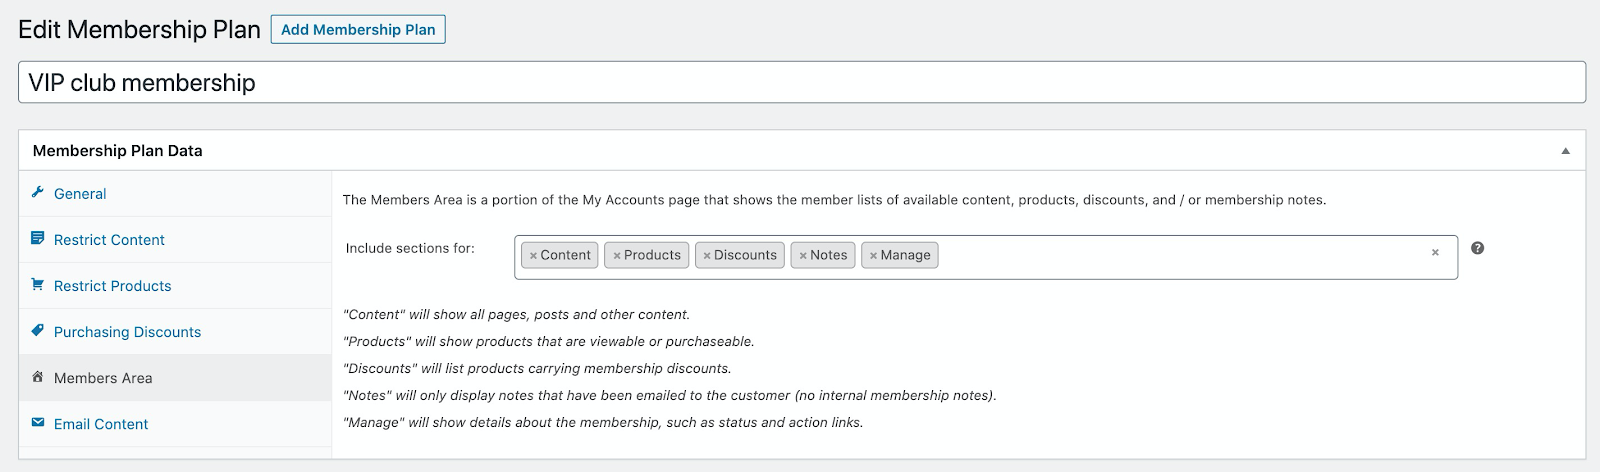 Decide what will be featured in a members area on your site.